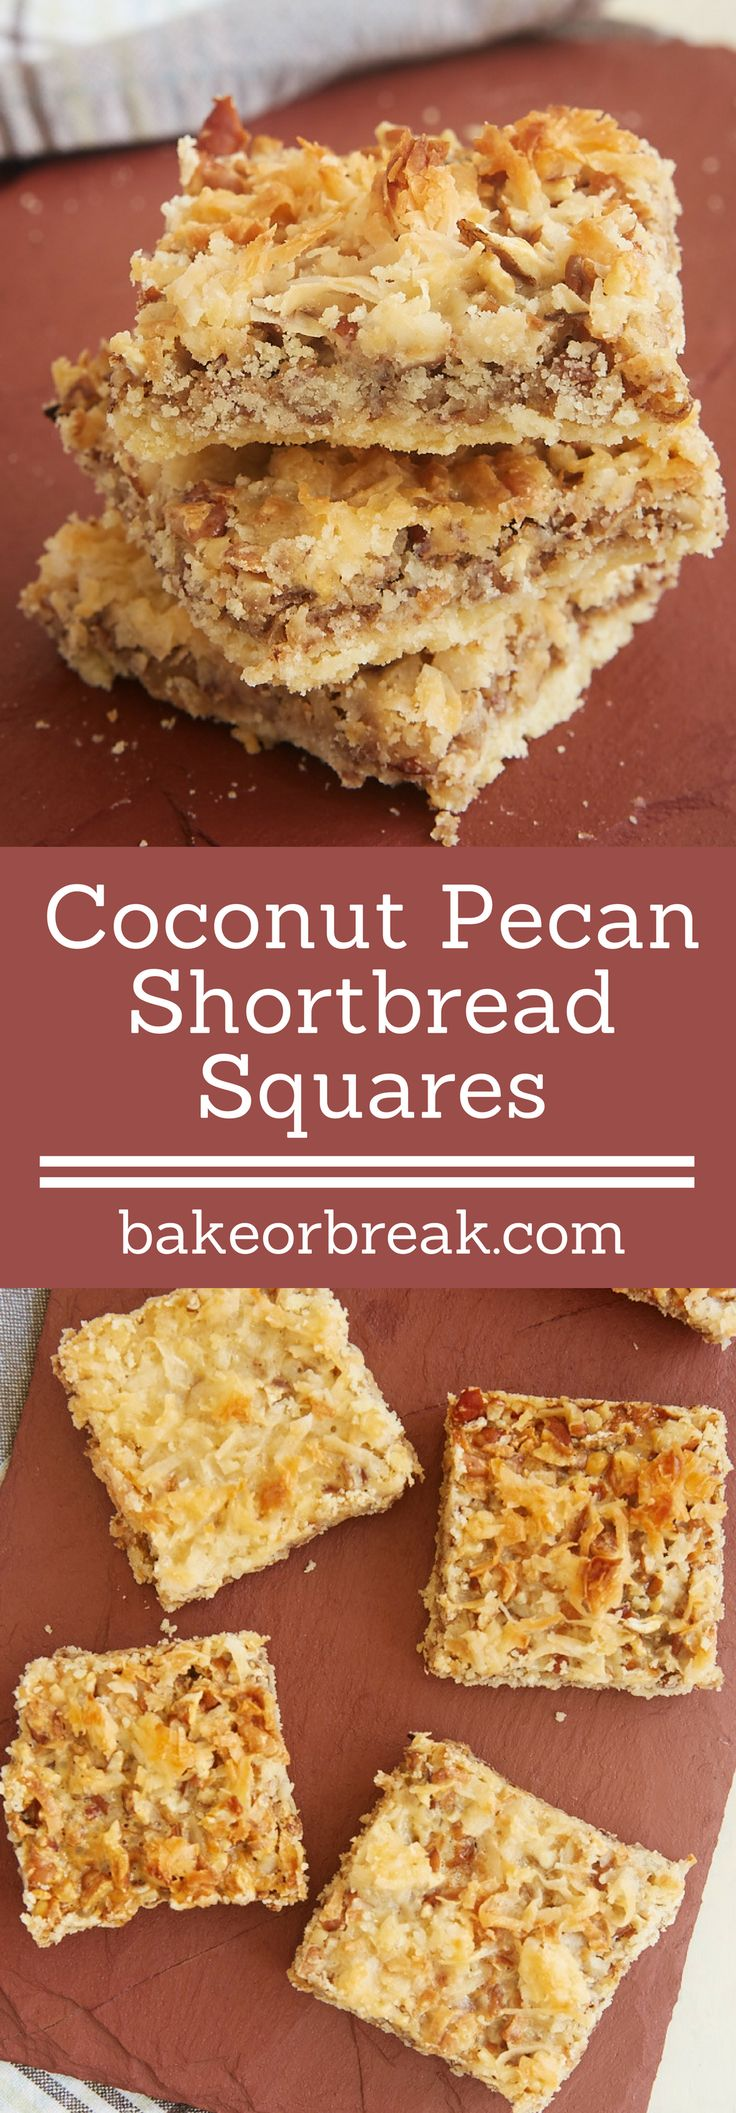 You only need 5 ingredients to make these sweet, nutty, chewy, gooey, delicious Coconut Pecan Shortbread Squares. - Bake or Break ~ http://www.bakeorbreak.com